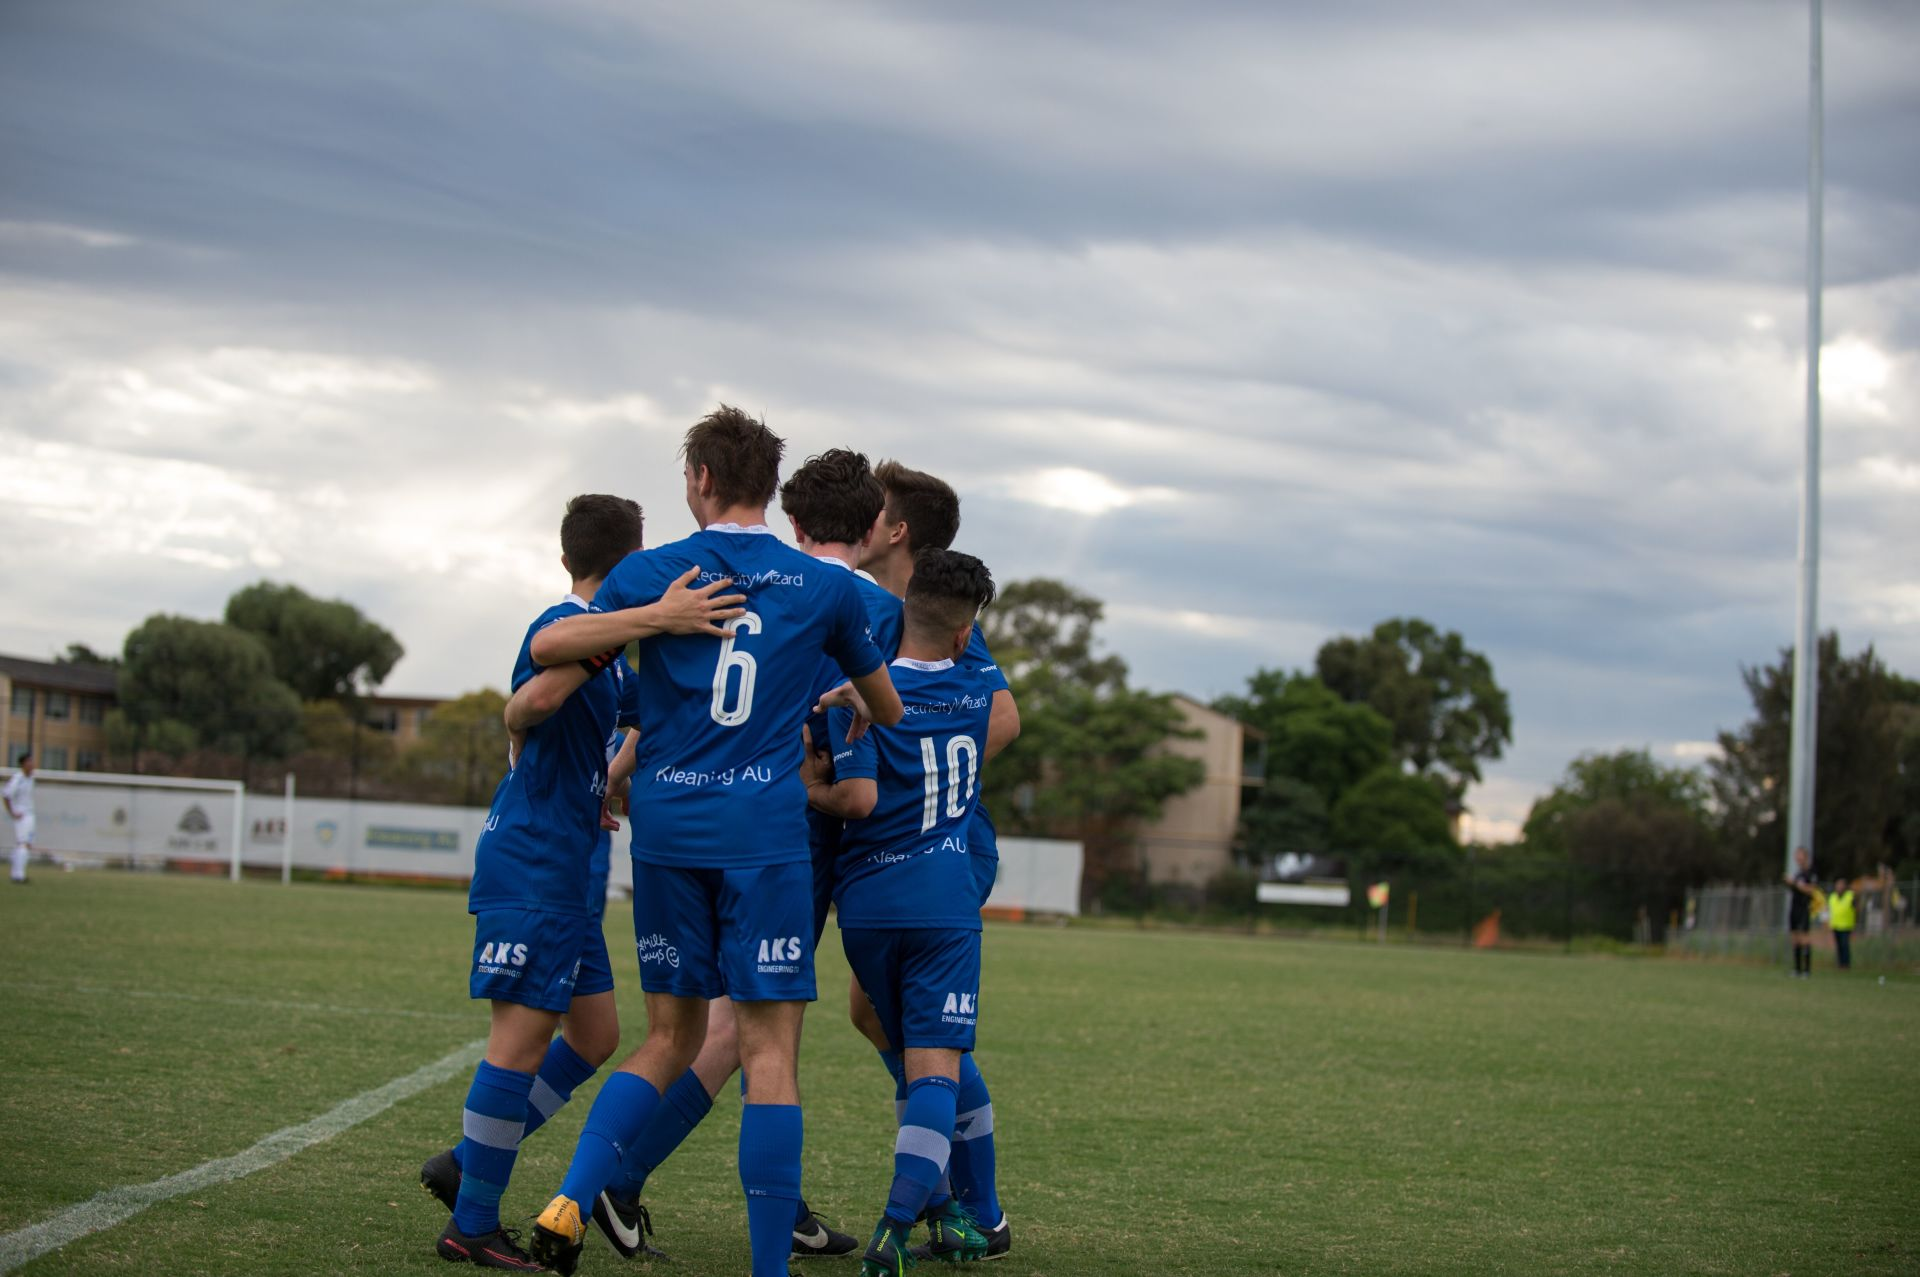 2019 NPL JUNIOR TRIALS EXPRESSION OF INTEREST